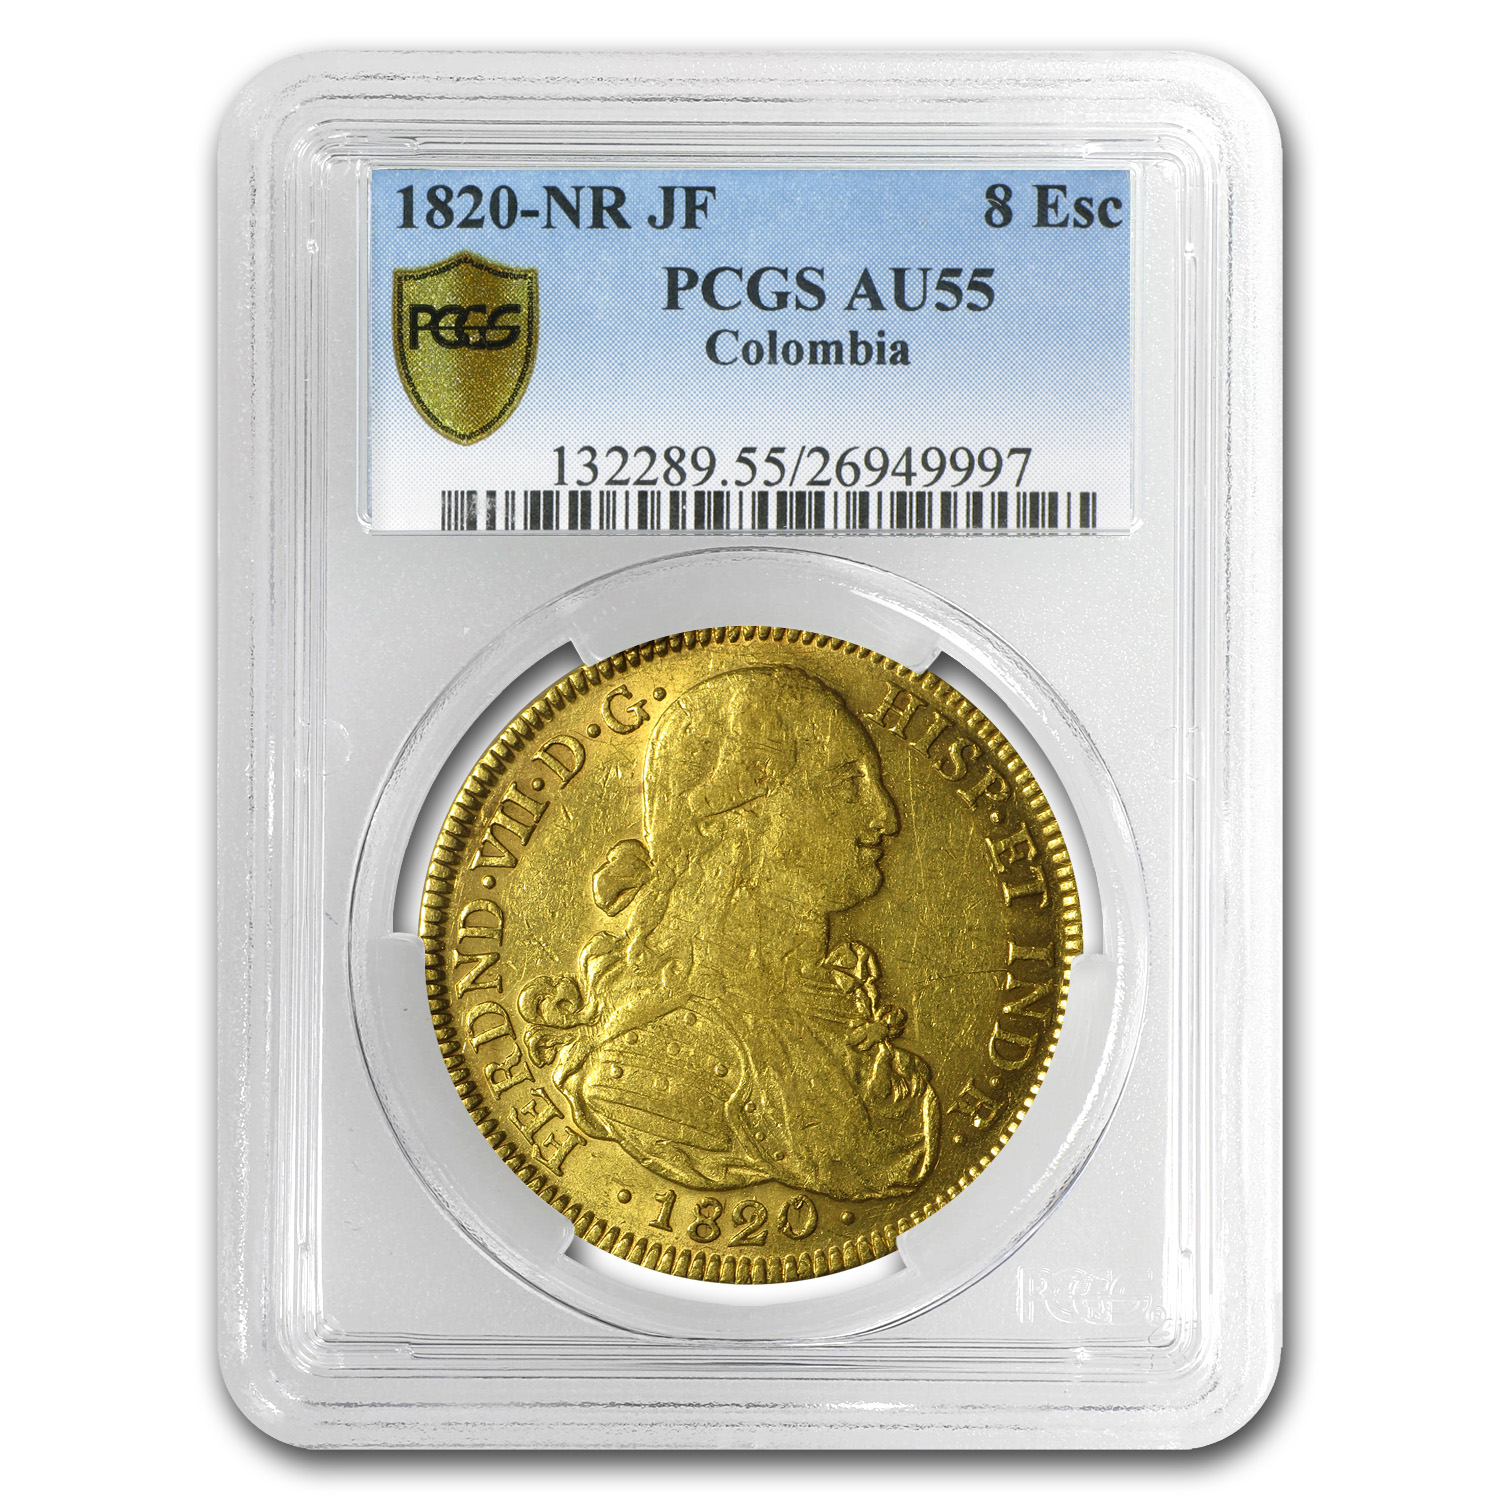 1820 NR-JF Colombia Gold 8 Escudo Ferdinand VII AU-55 PCGS